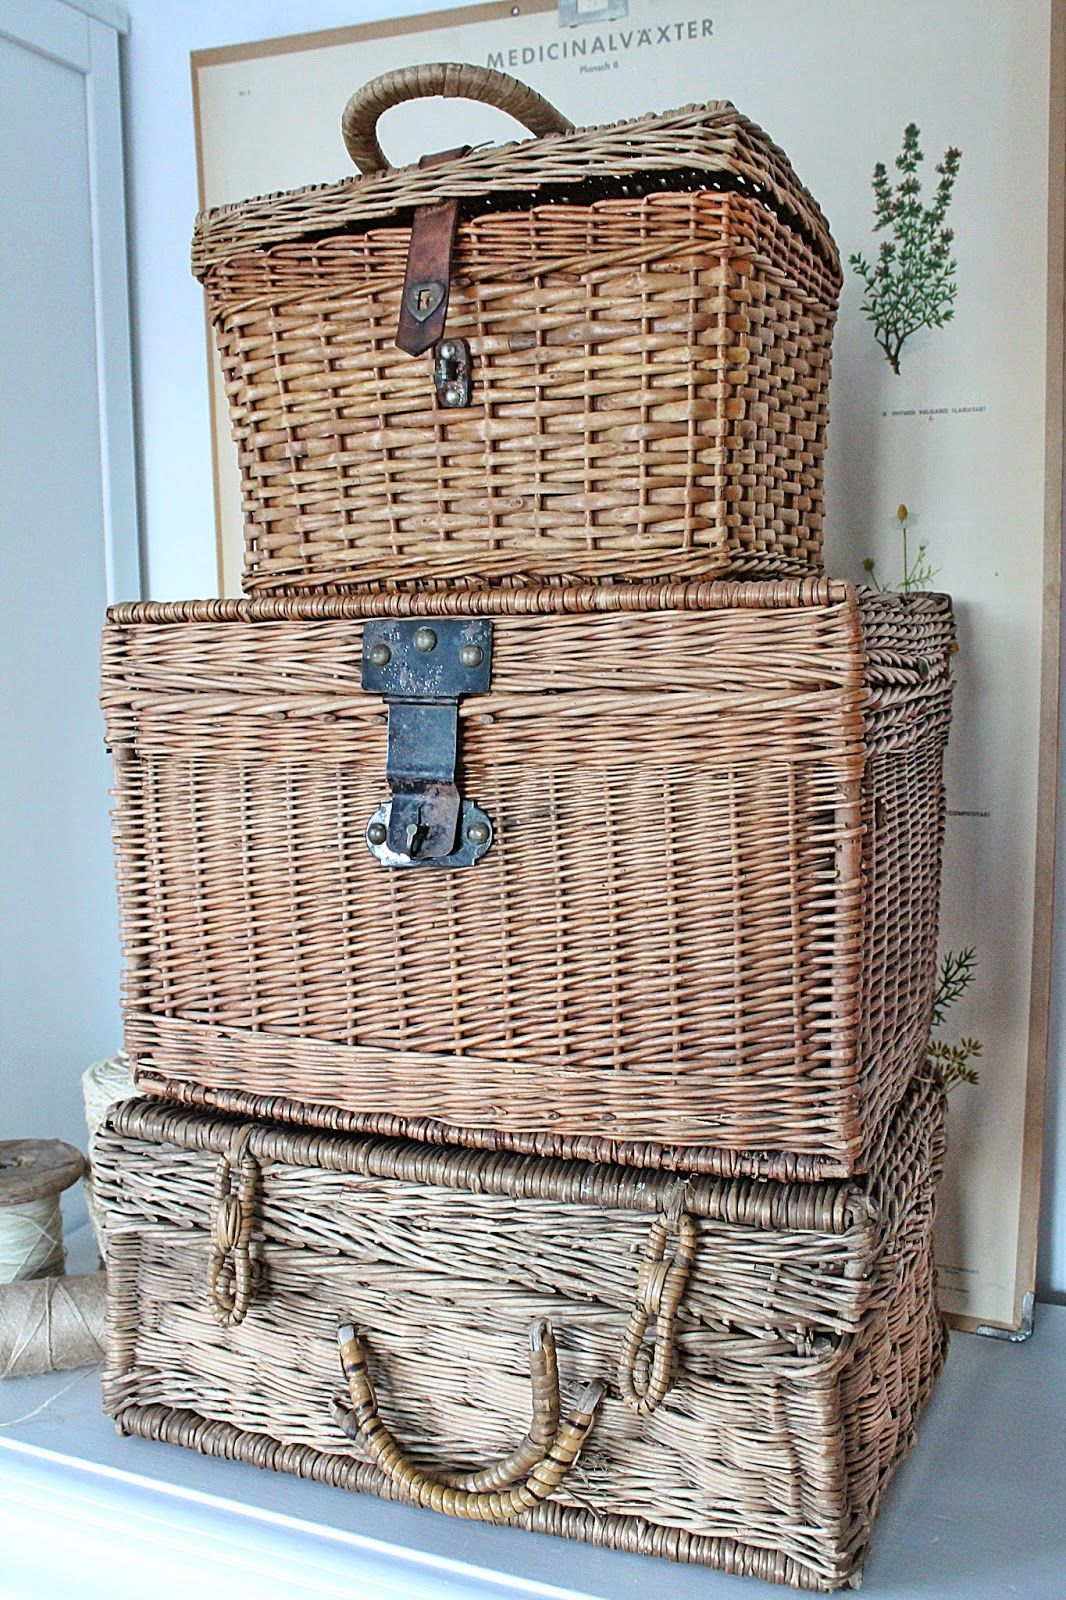 Vintage Wicker Picnic Baskets Trunks And Suitcases